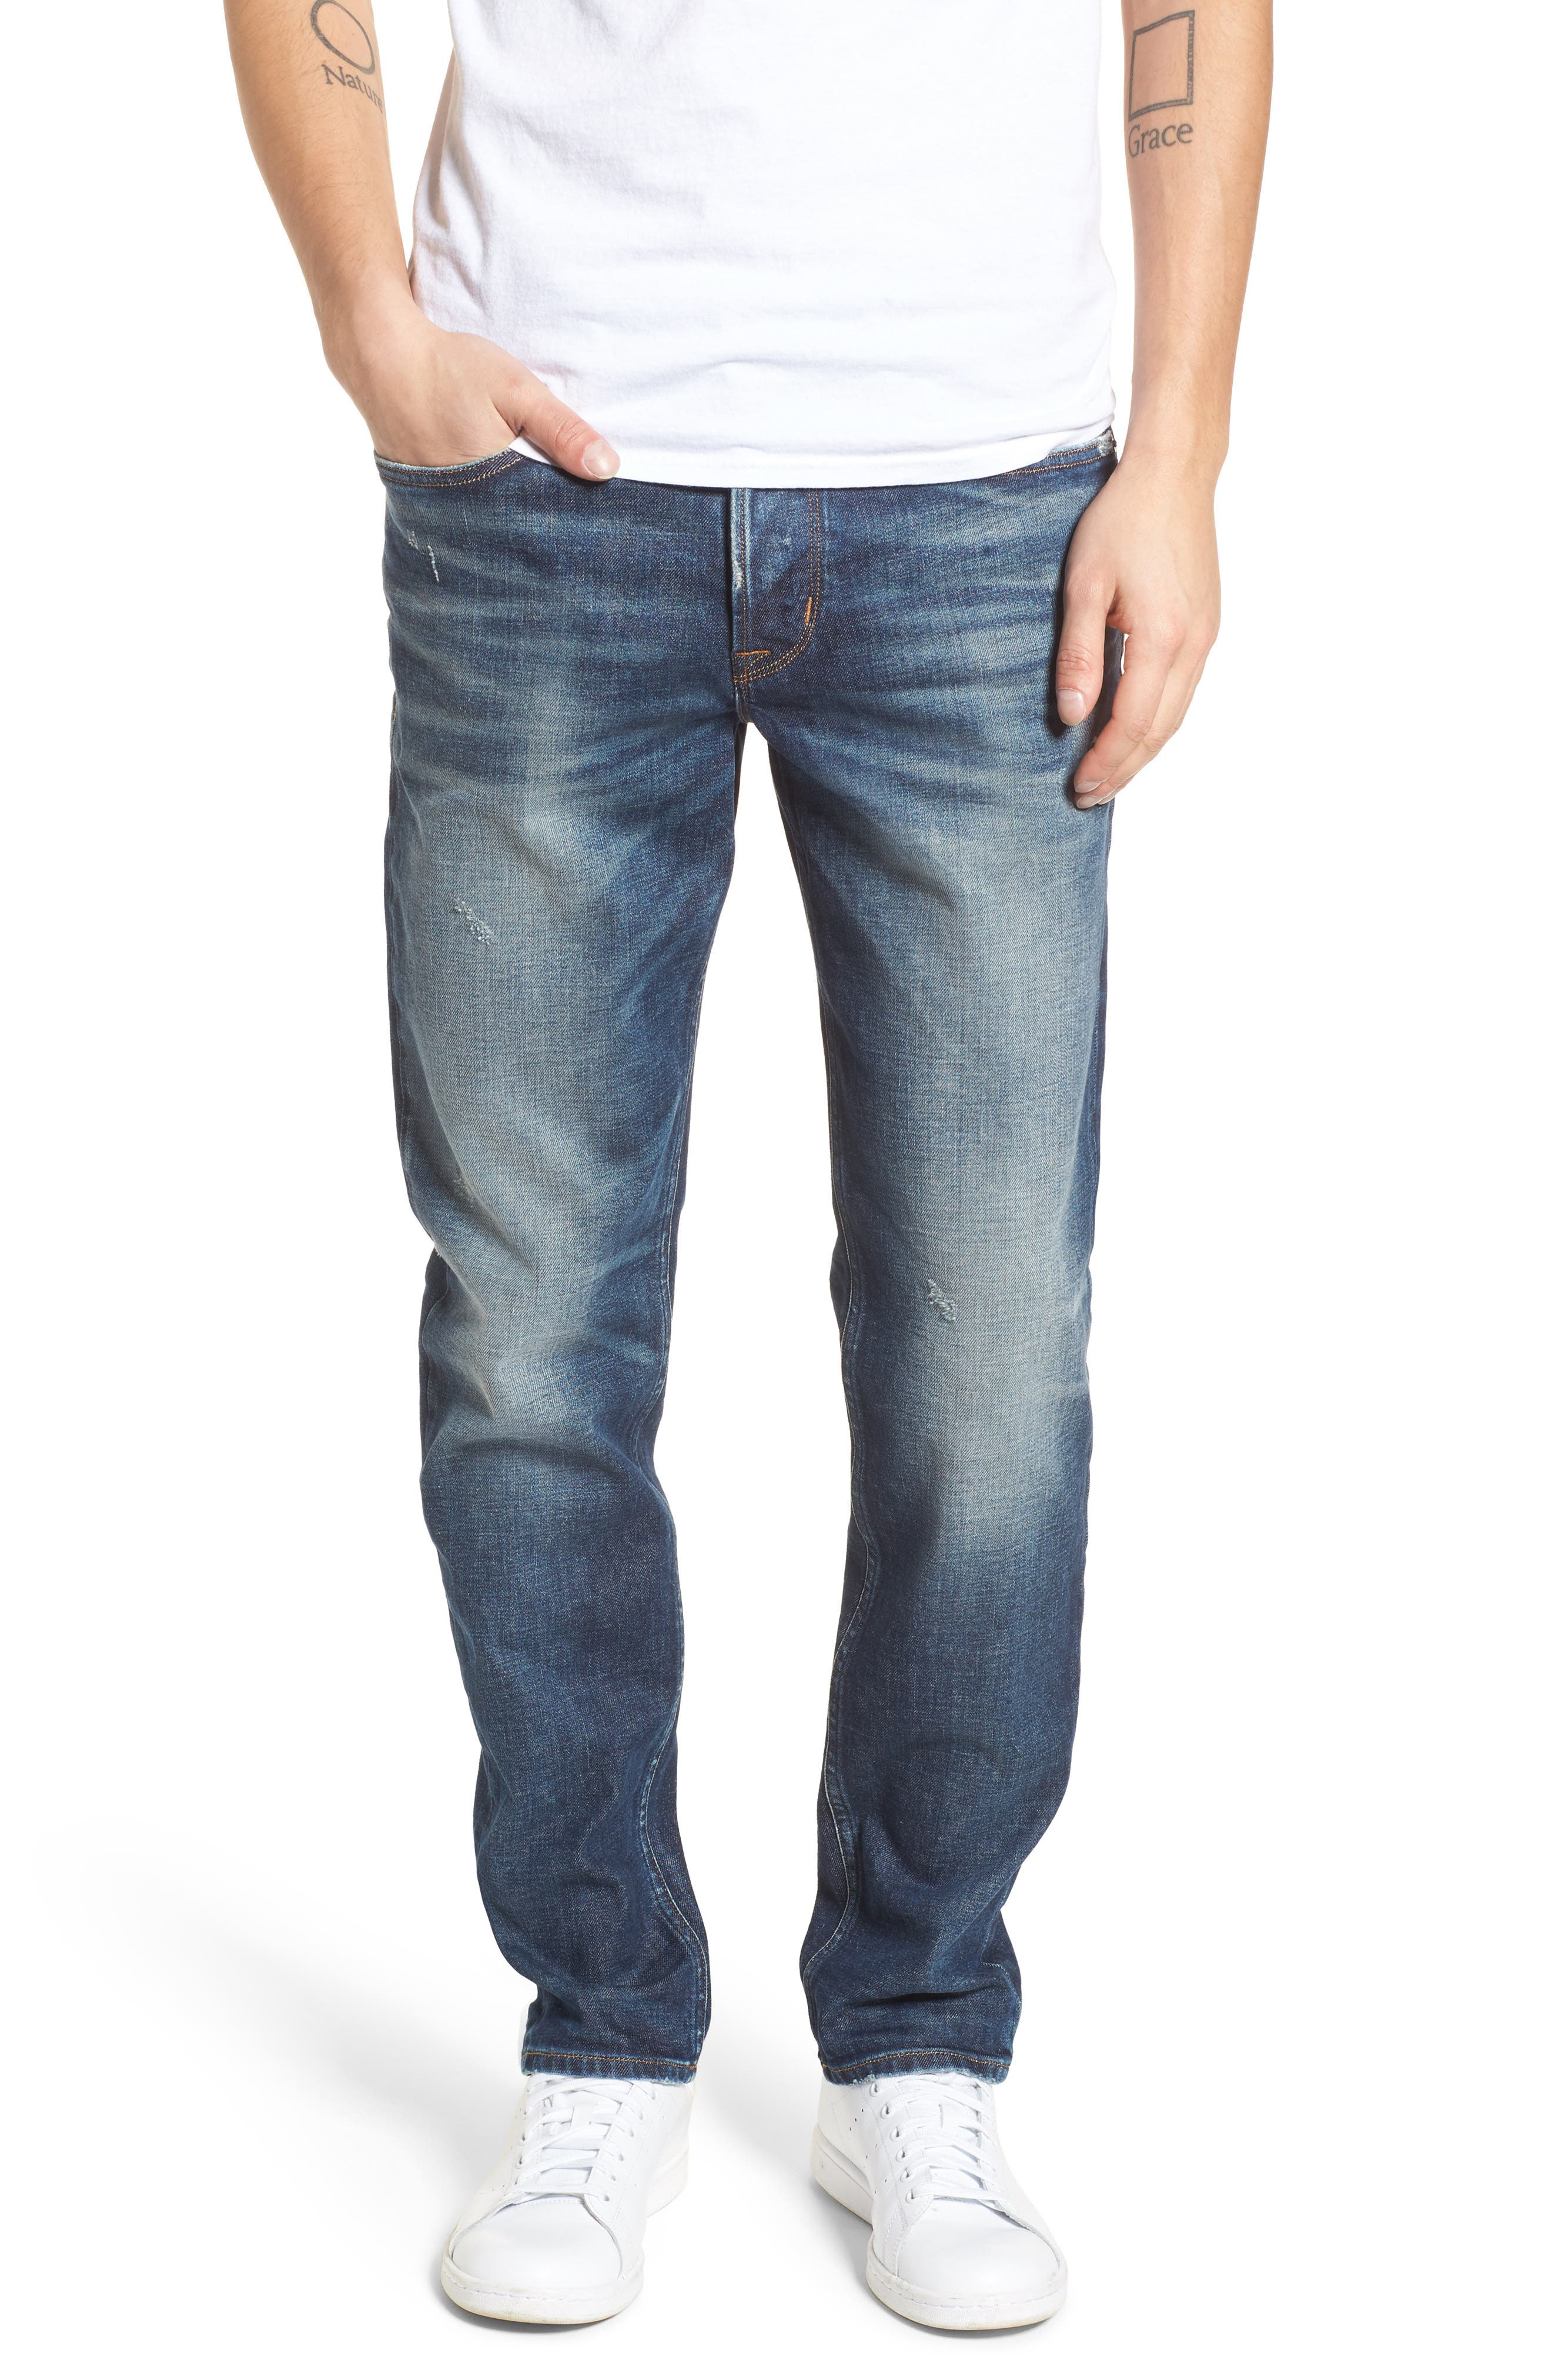 Sartor Slouchy Skinny Fit Jeans,                         Main,                         color, All City